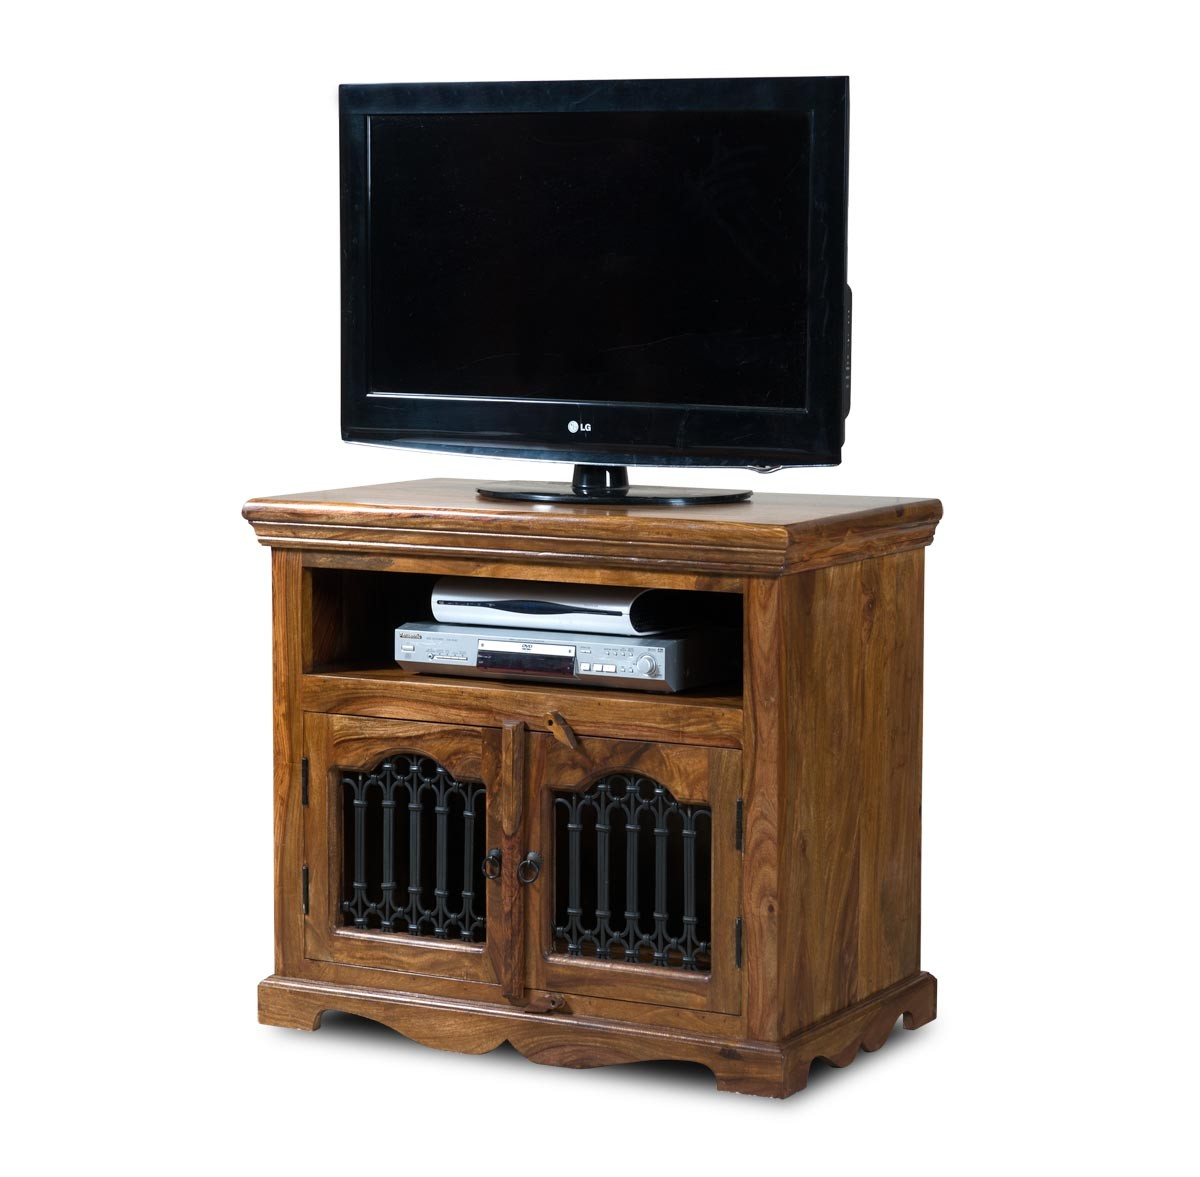 Jali sheesham tall tv cabinet casa bella furniture uk for Furniture uk